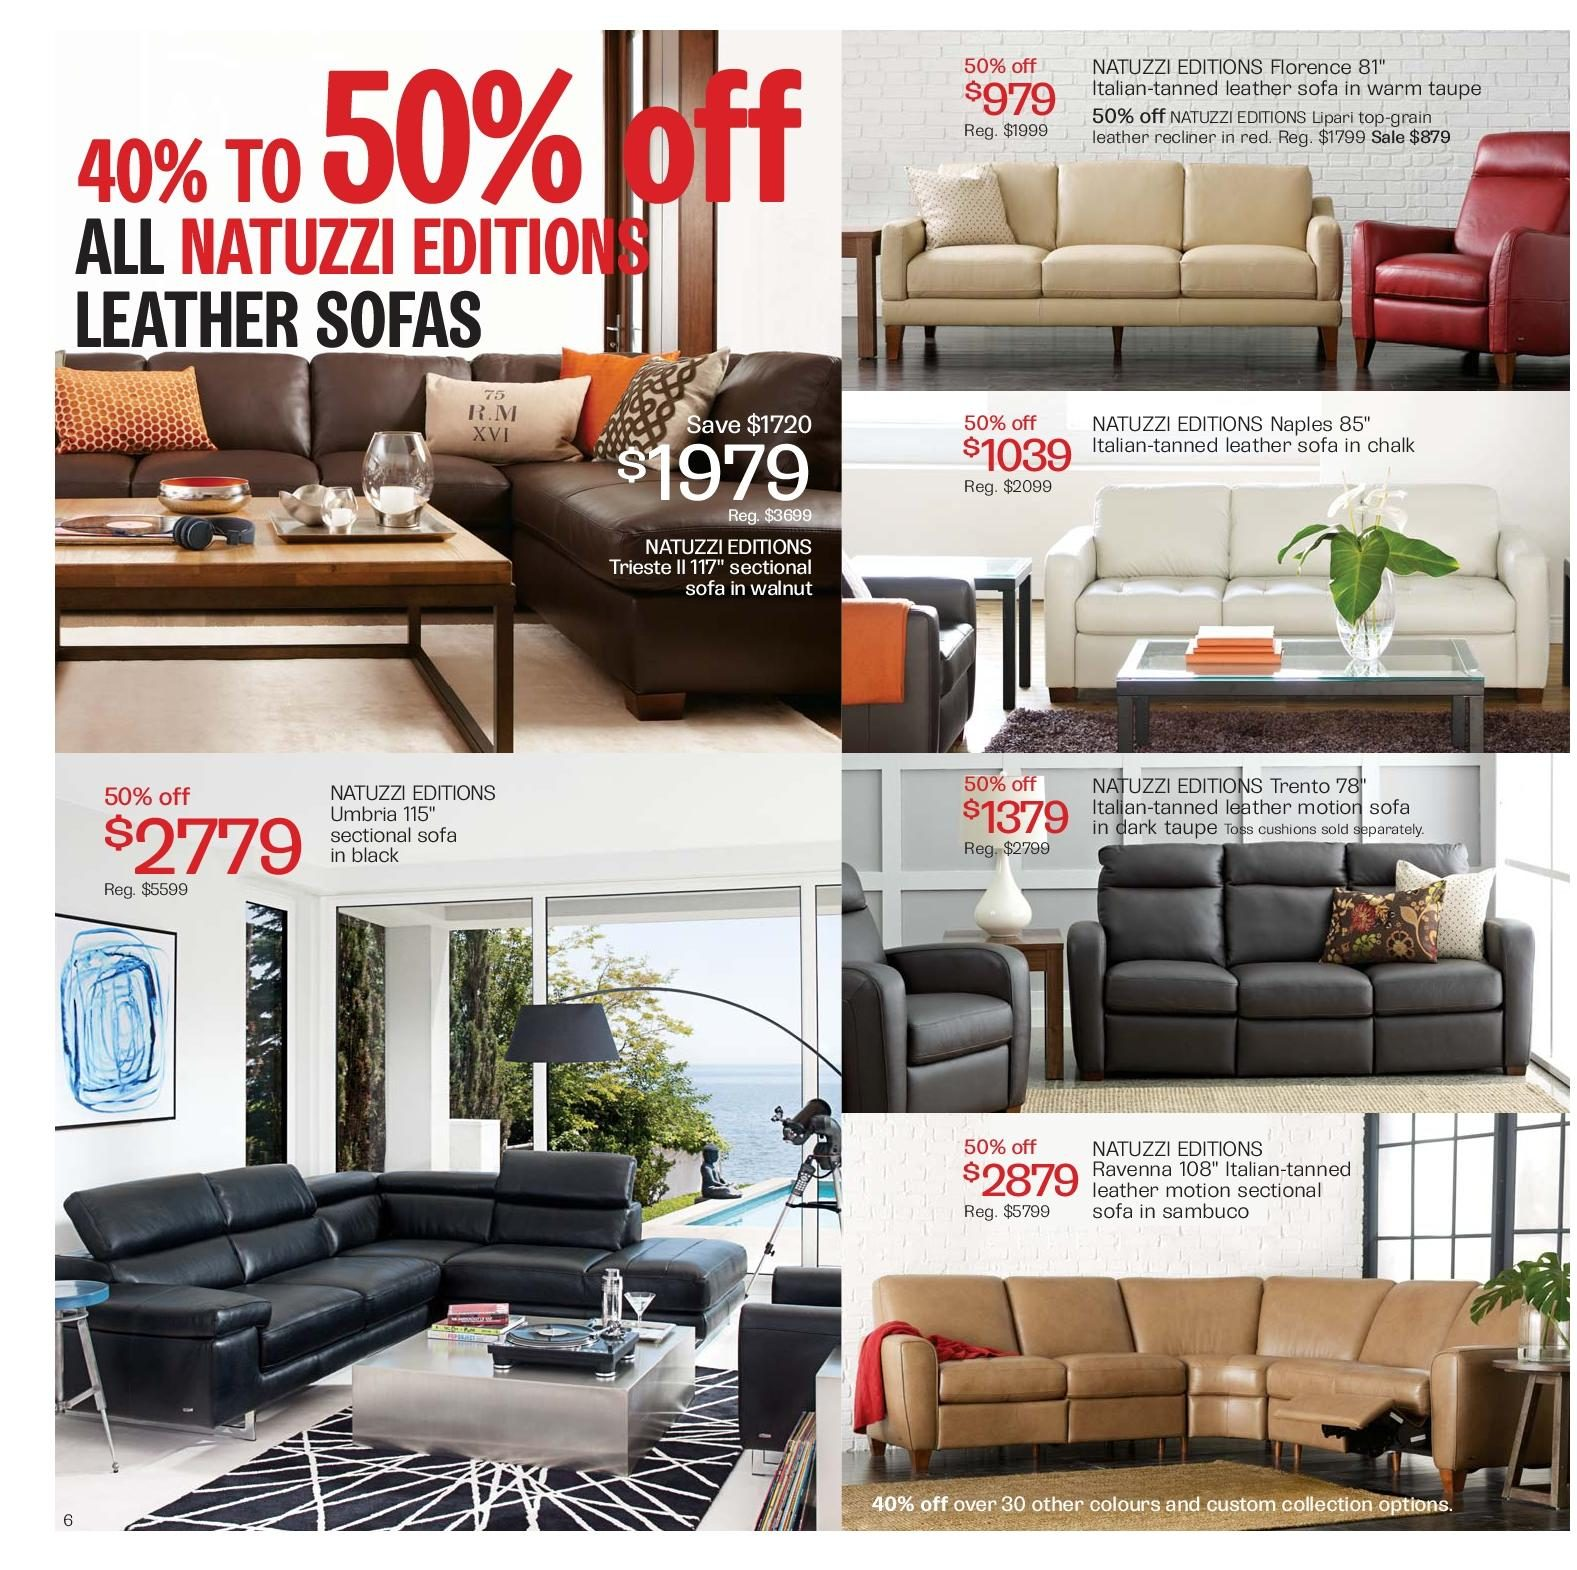 Costco Furniture Warehouse Seattle: Review For Natuzzi Sofa Loveseat An Excellent Home Design